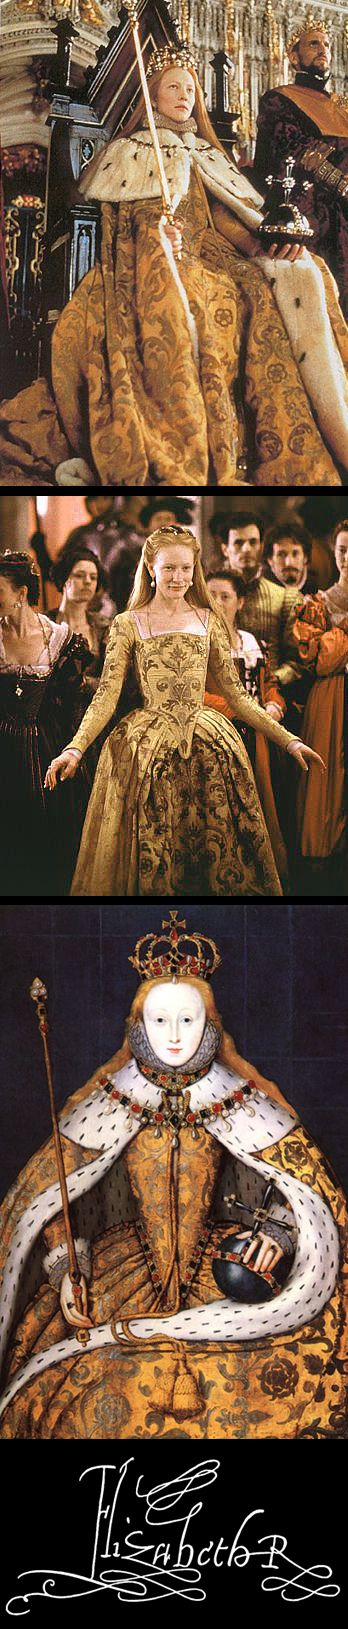 The coronation costume from the movie, 'Elizabeth' (1998), compared with the real article of clothing, shown in The Coronation Portrait (NPG, London).